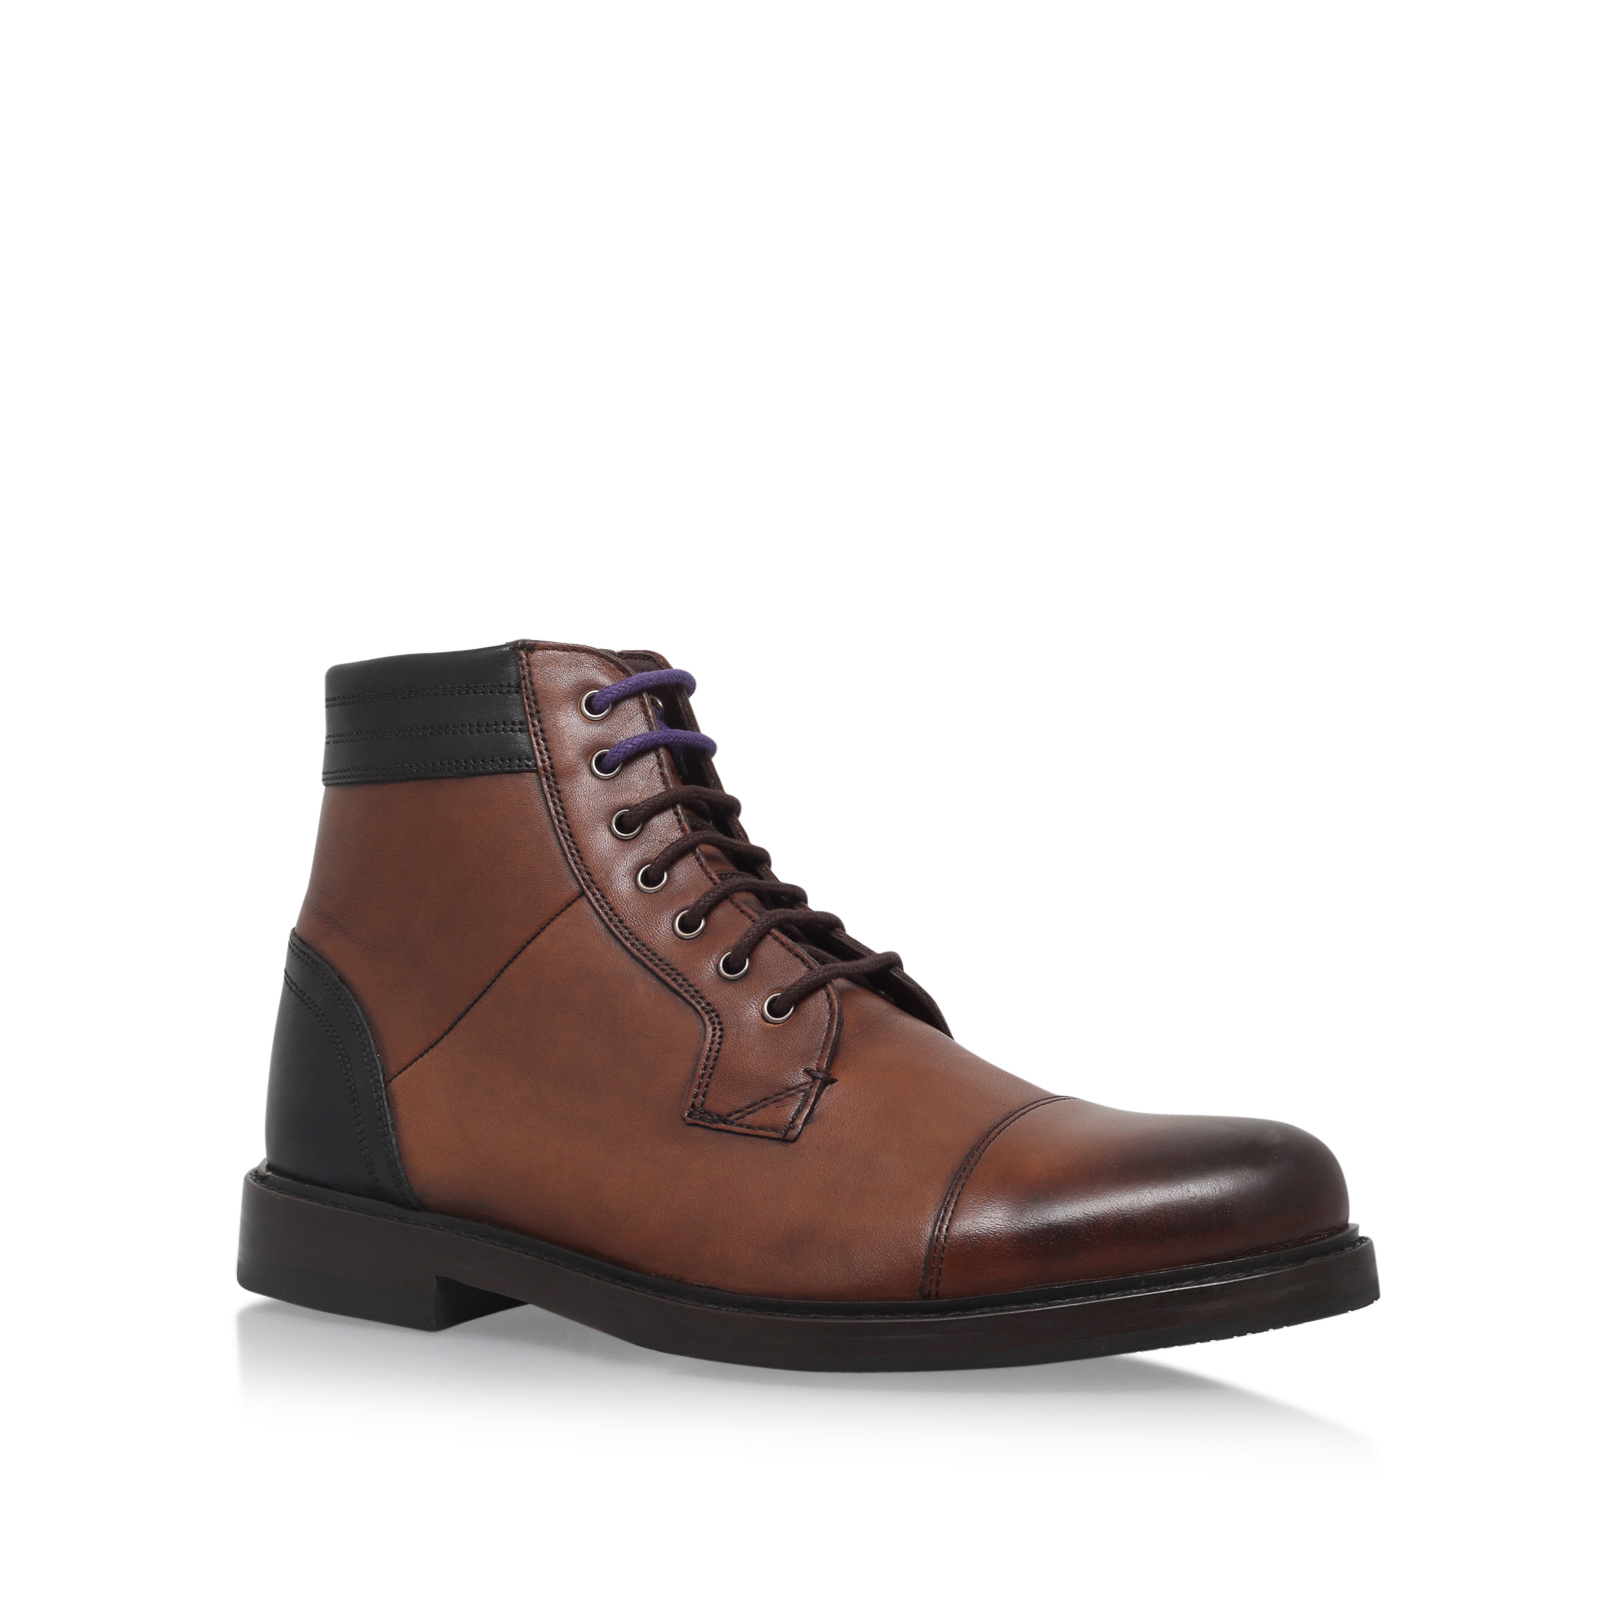 LEATHER LACE UP ANKLE